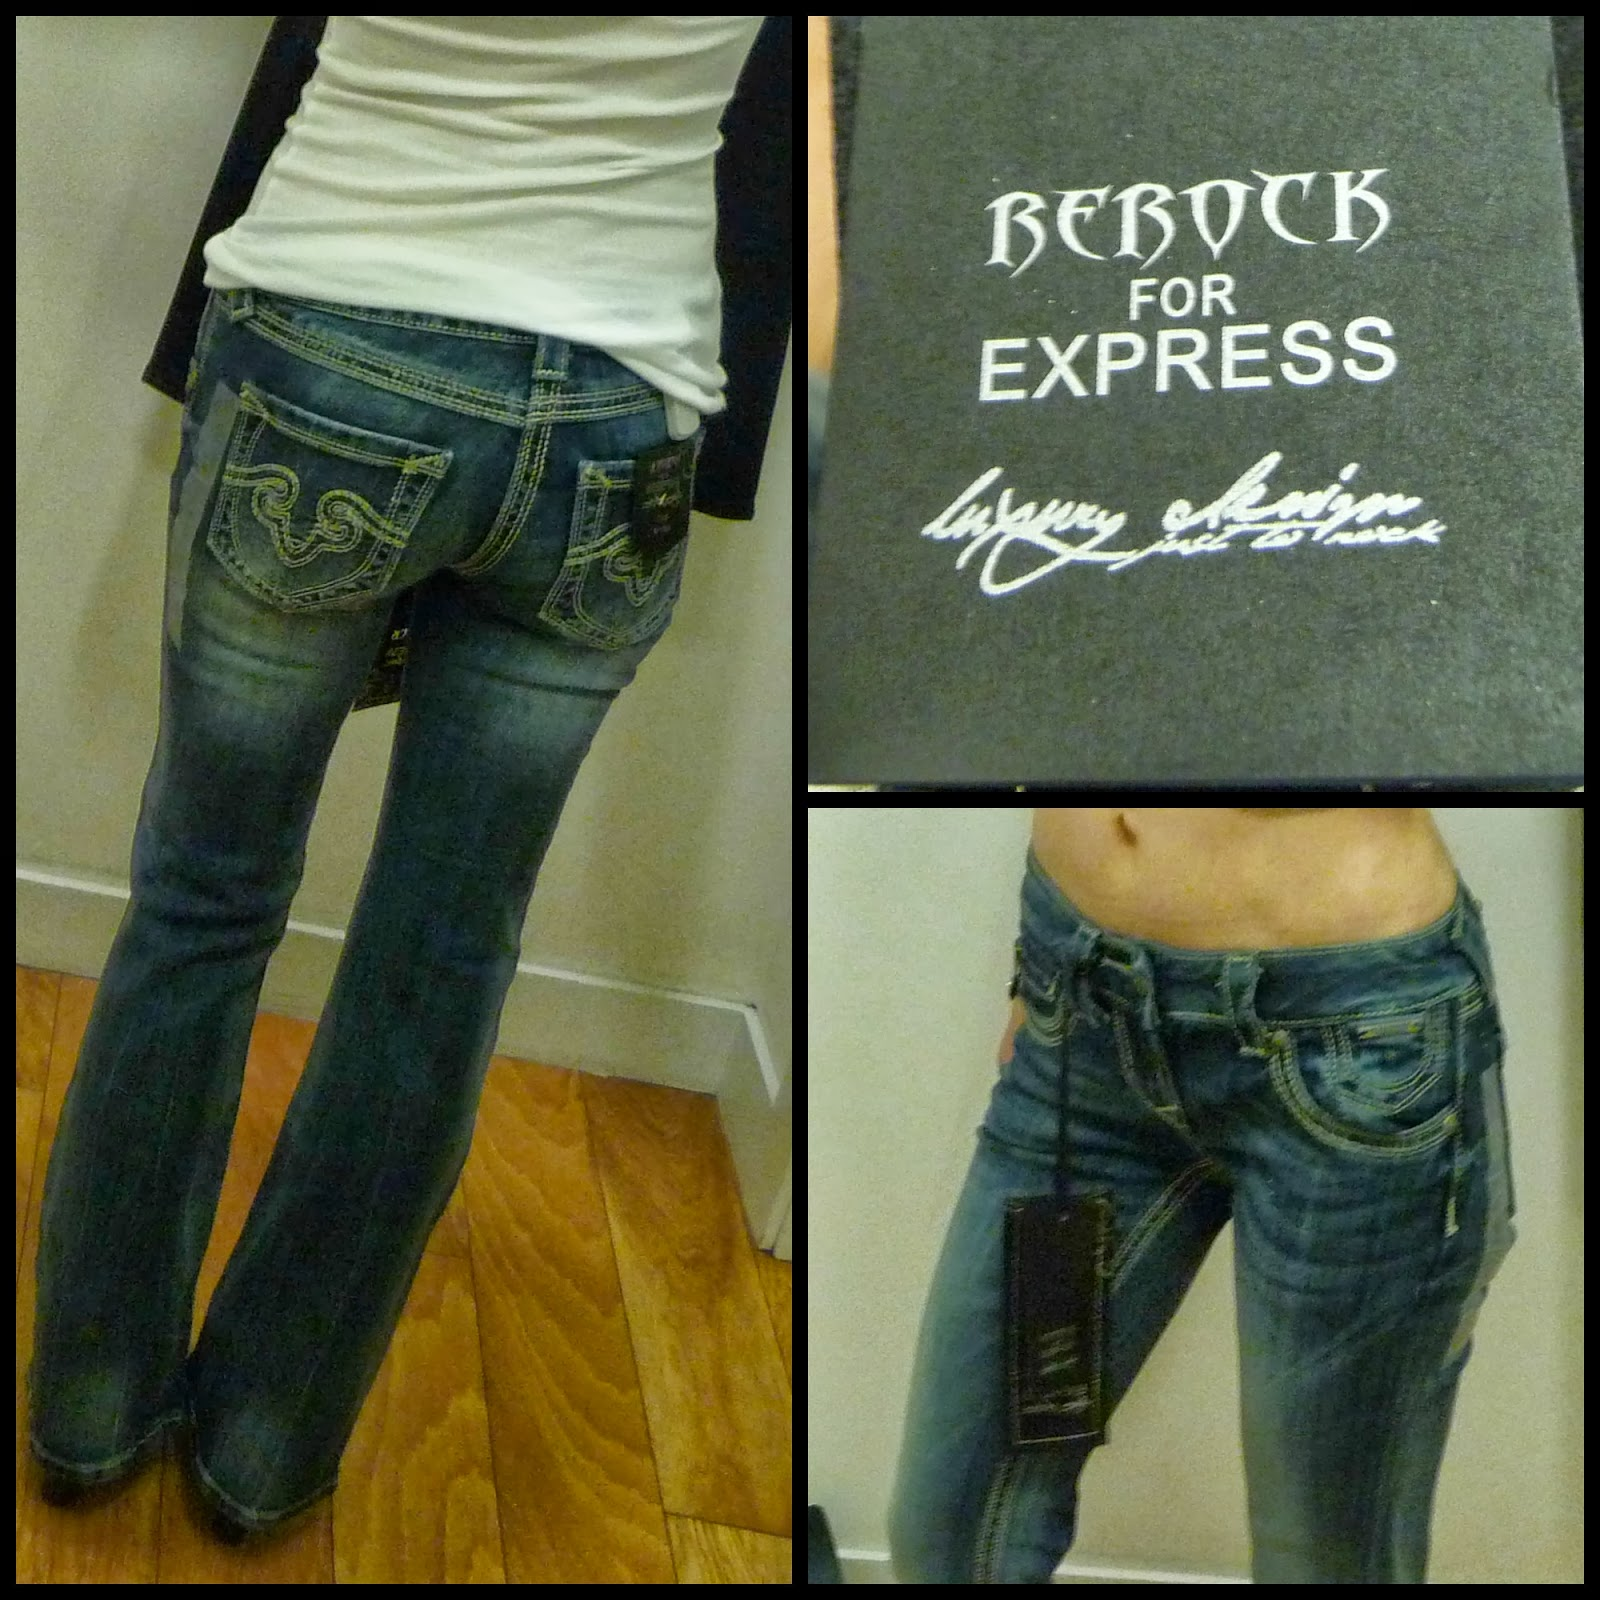 Express ReRock jeans, denim